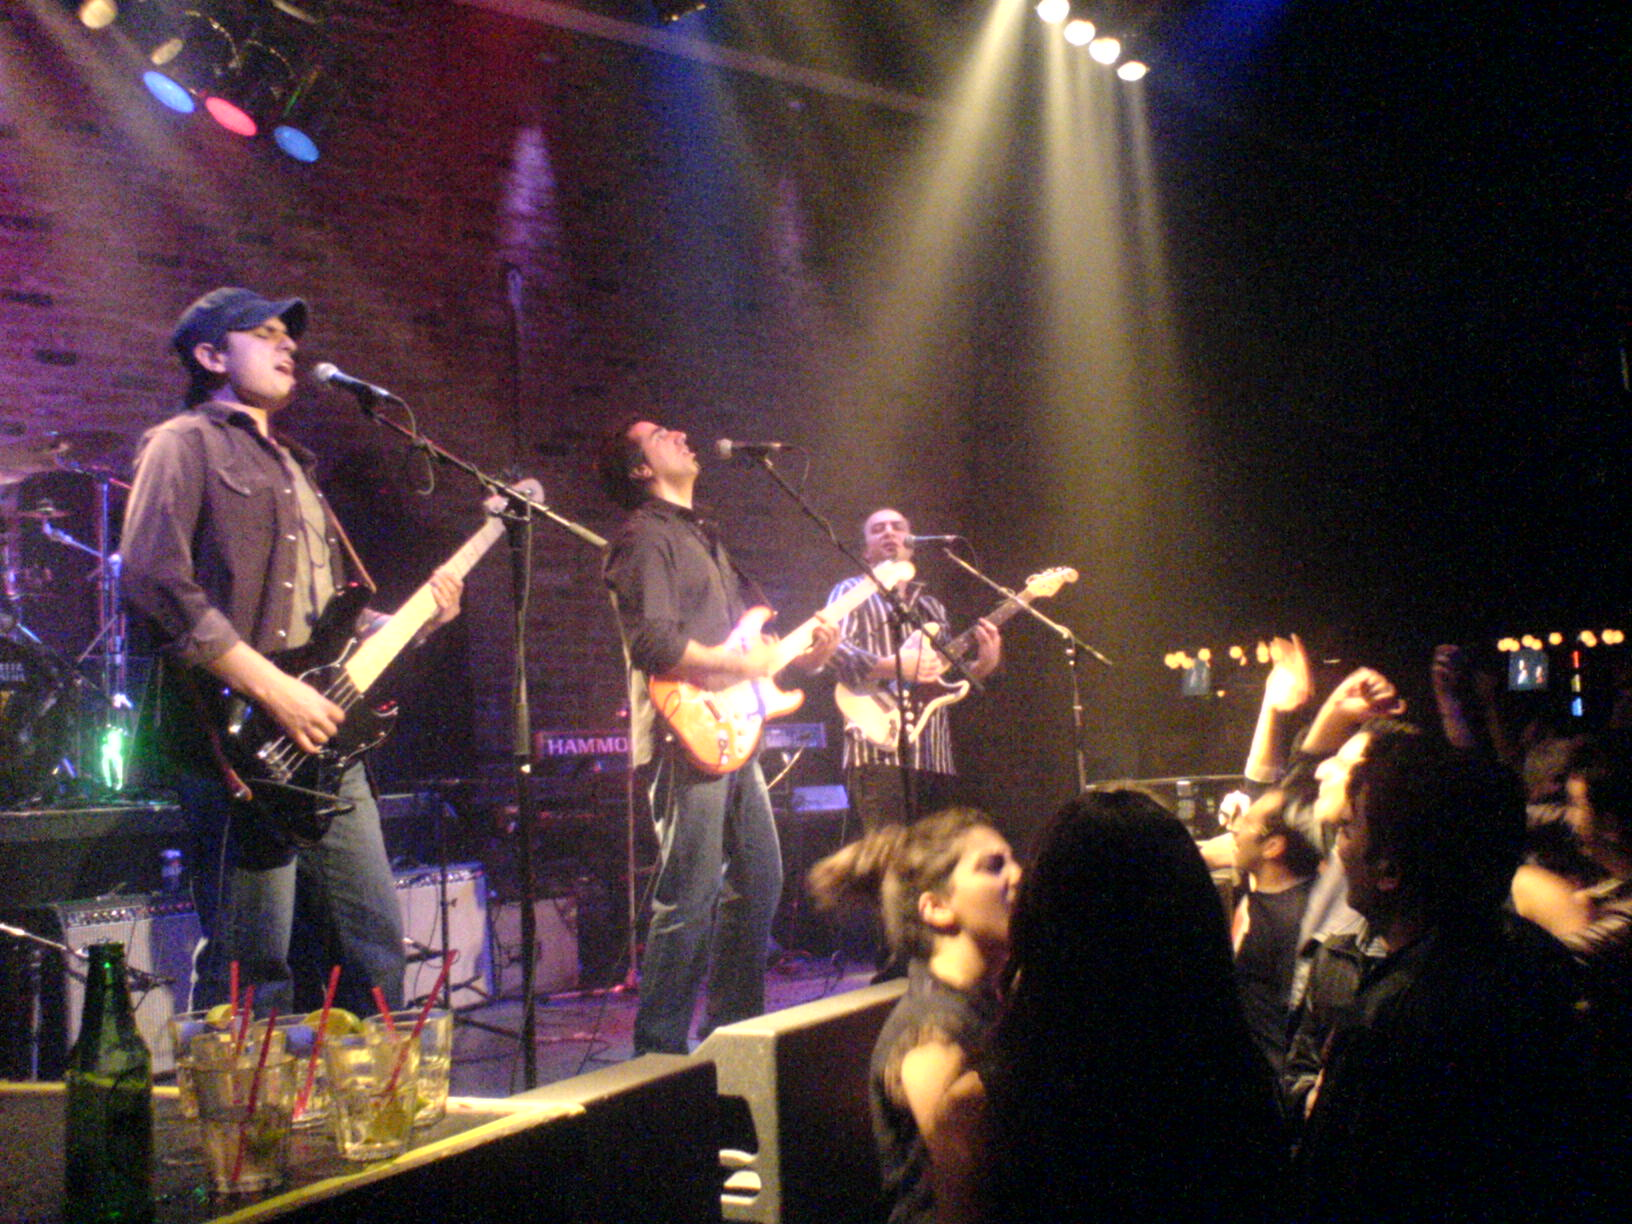 Kiosk Live in Vancouver; November 30, 2008